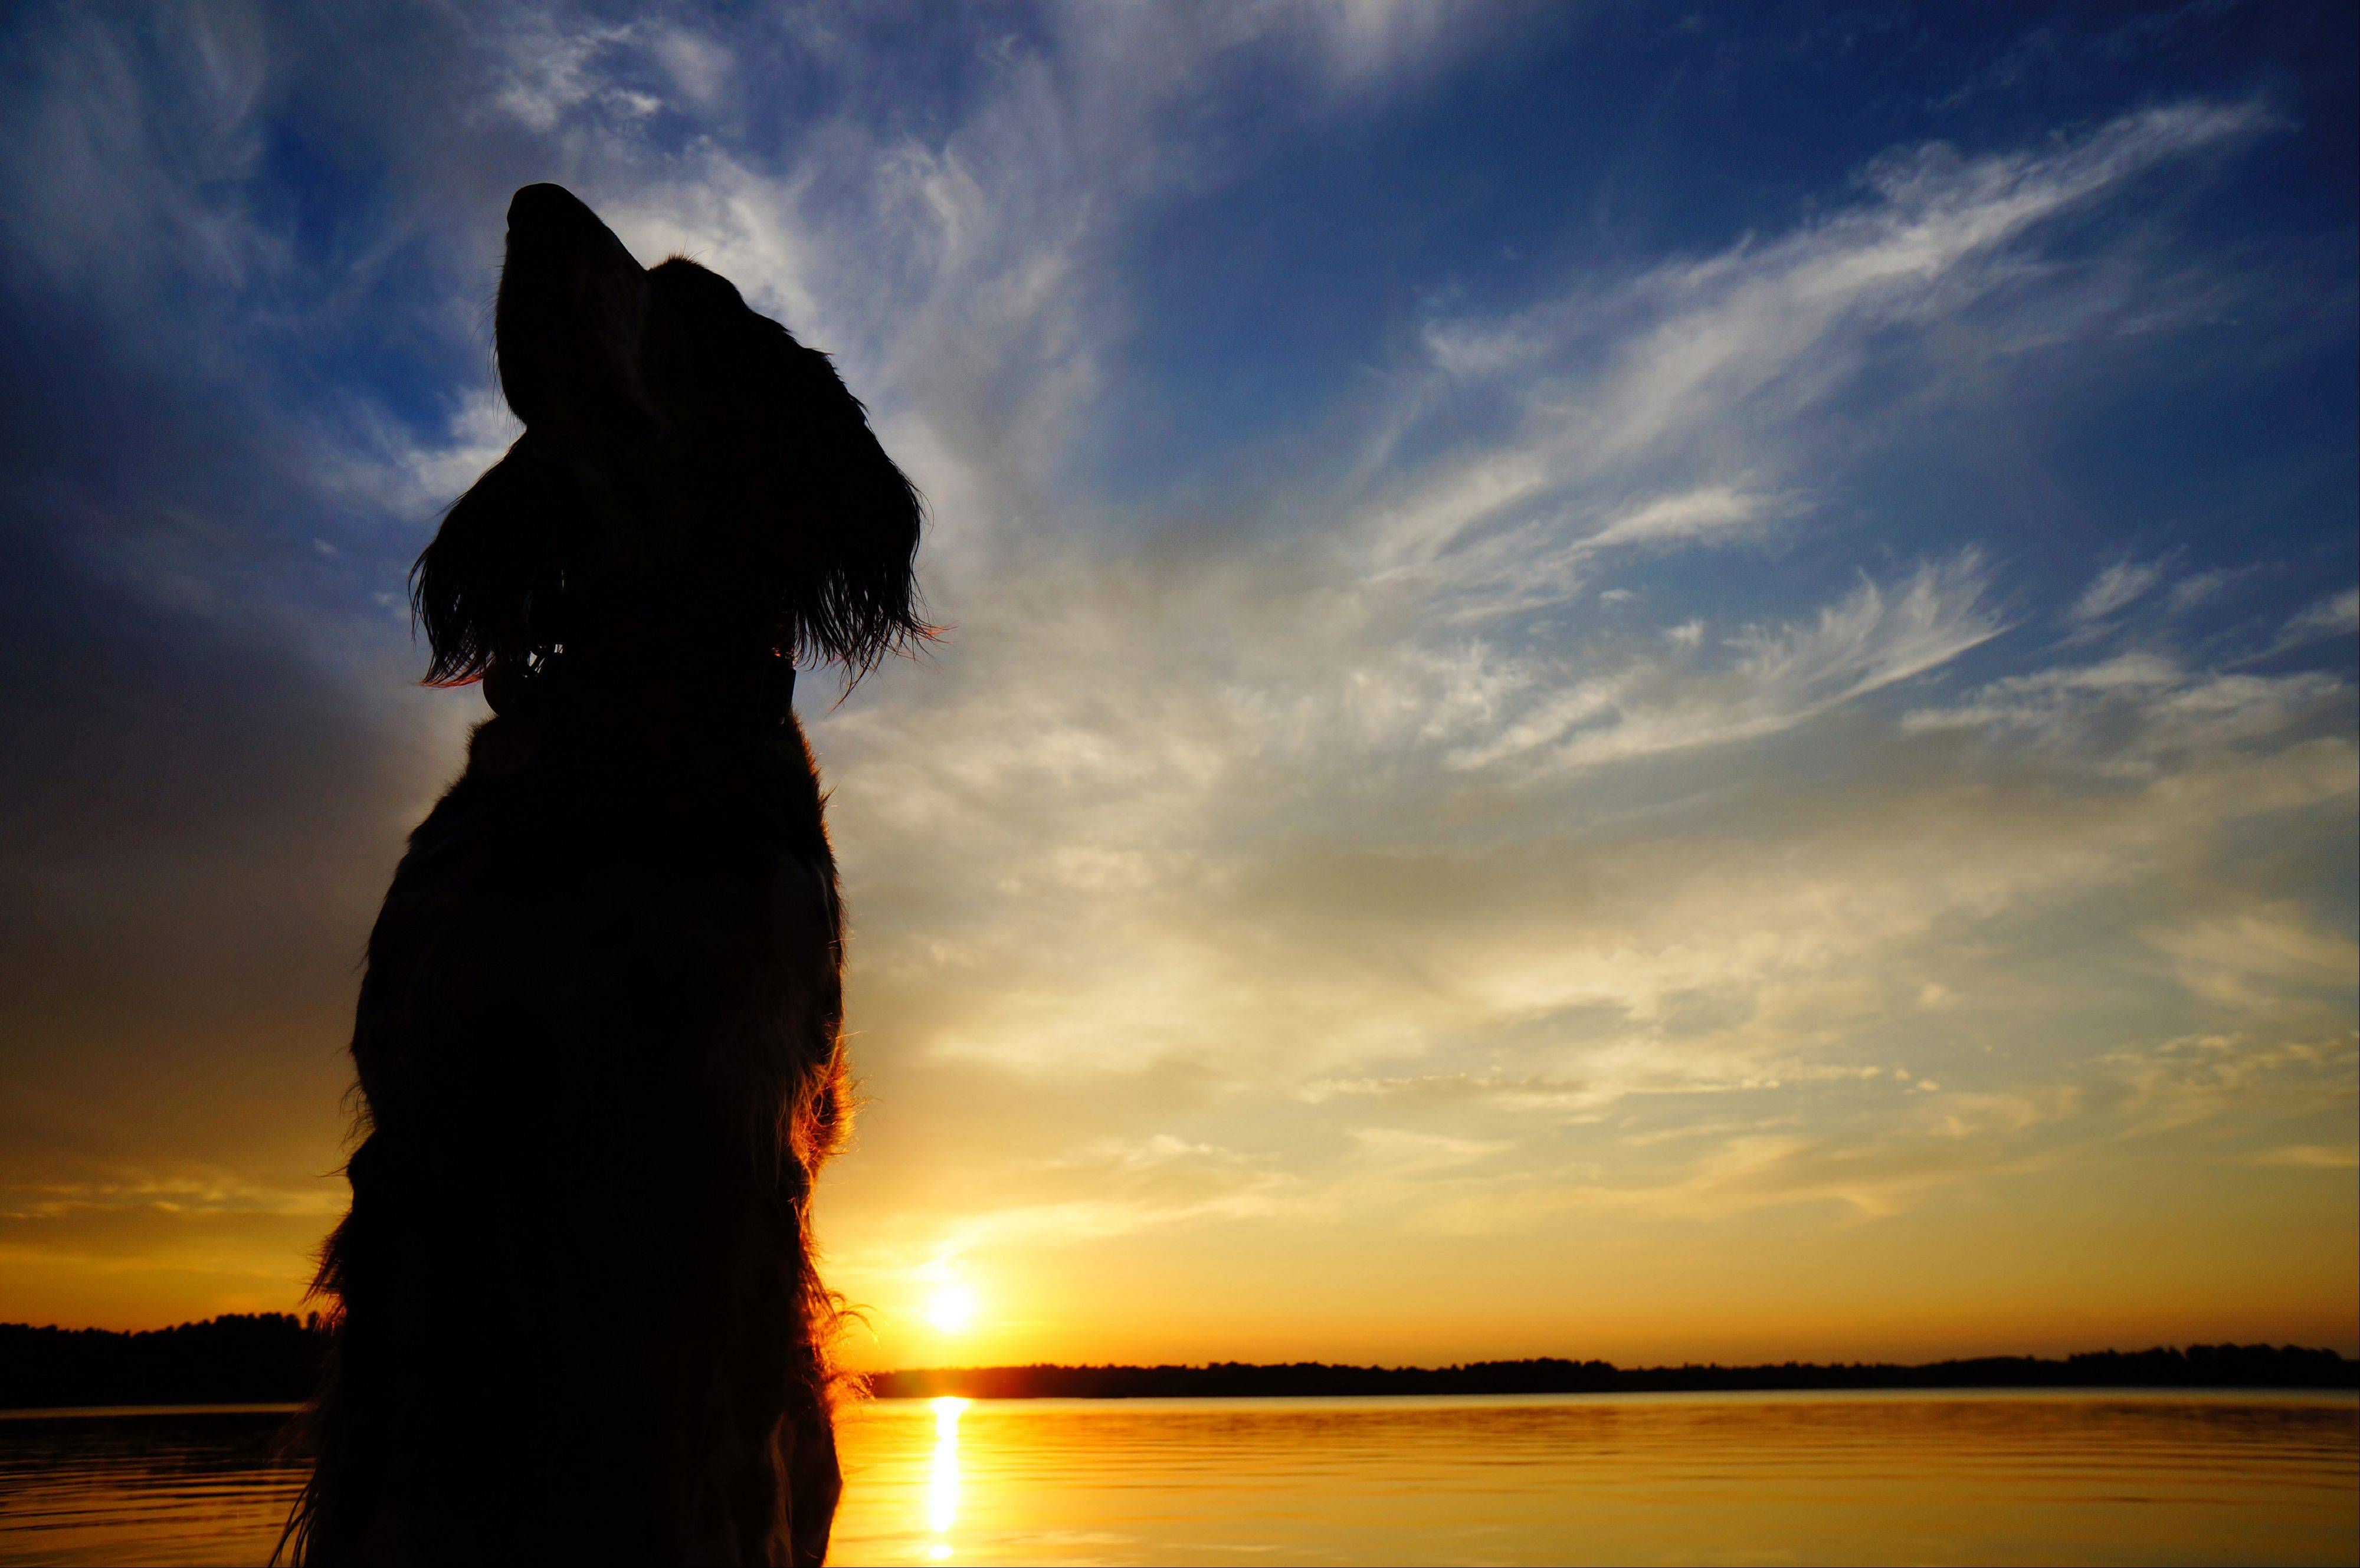 Fancy, an English Setter, sits on the end of the pier in Conover, Wisconsin with the sun setting in the background.